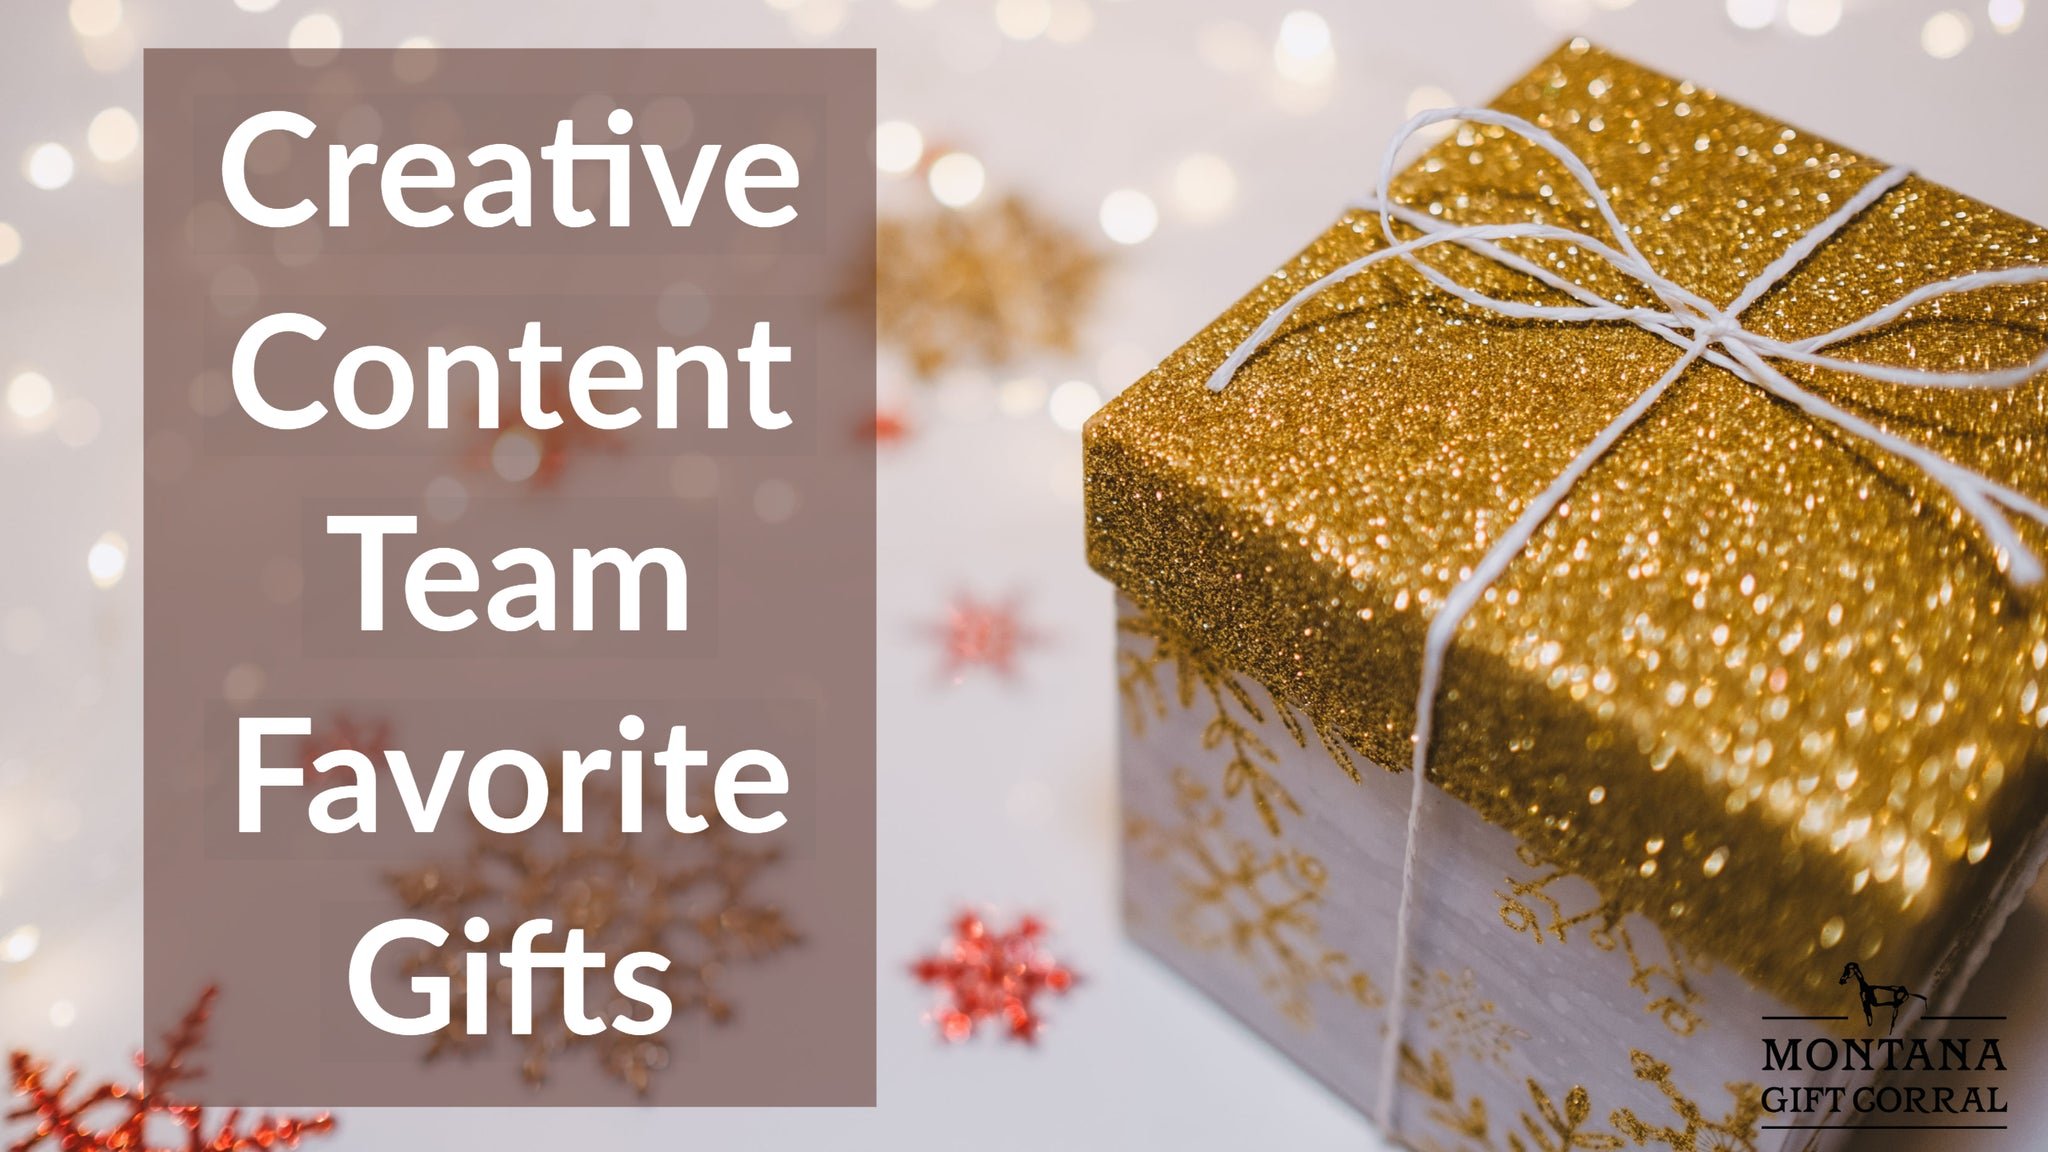 Creative Content Team Favorite Gifts